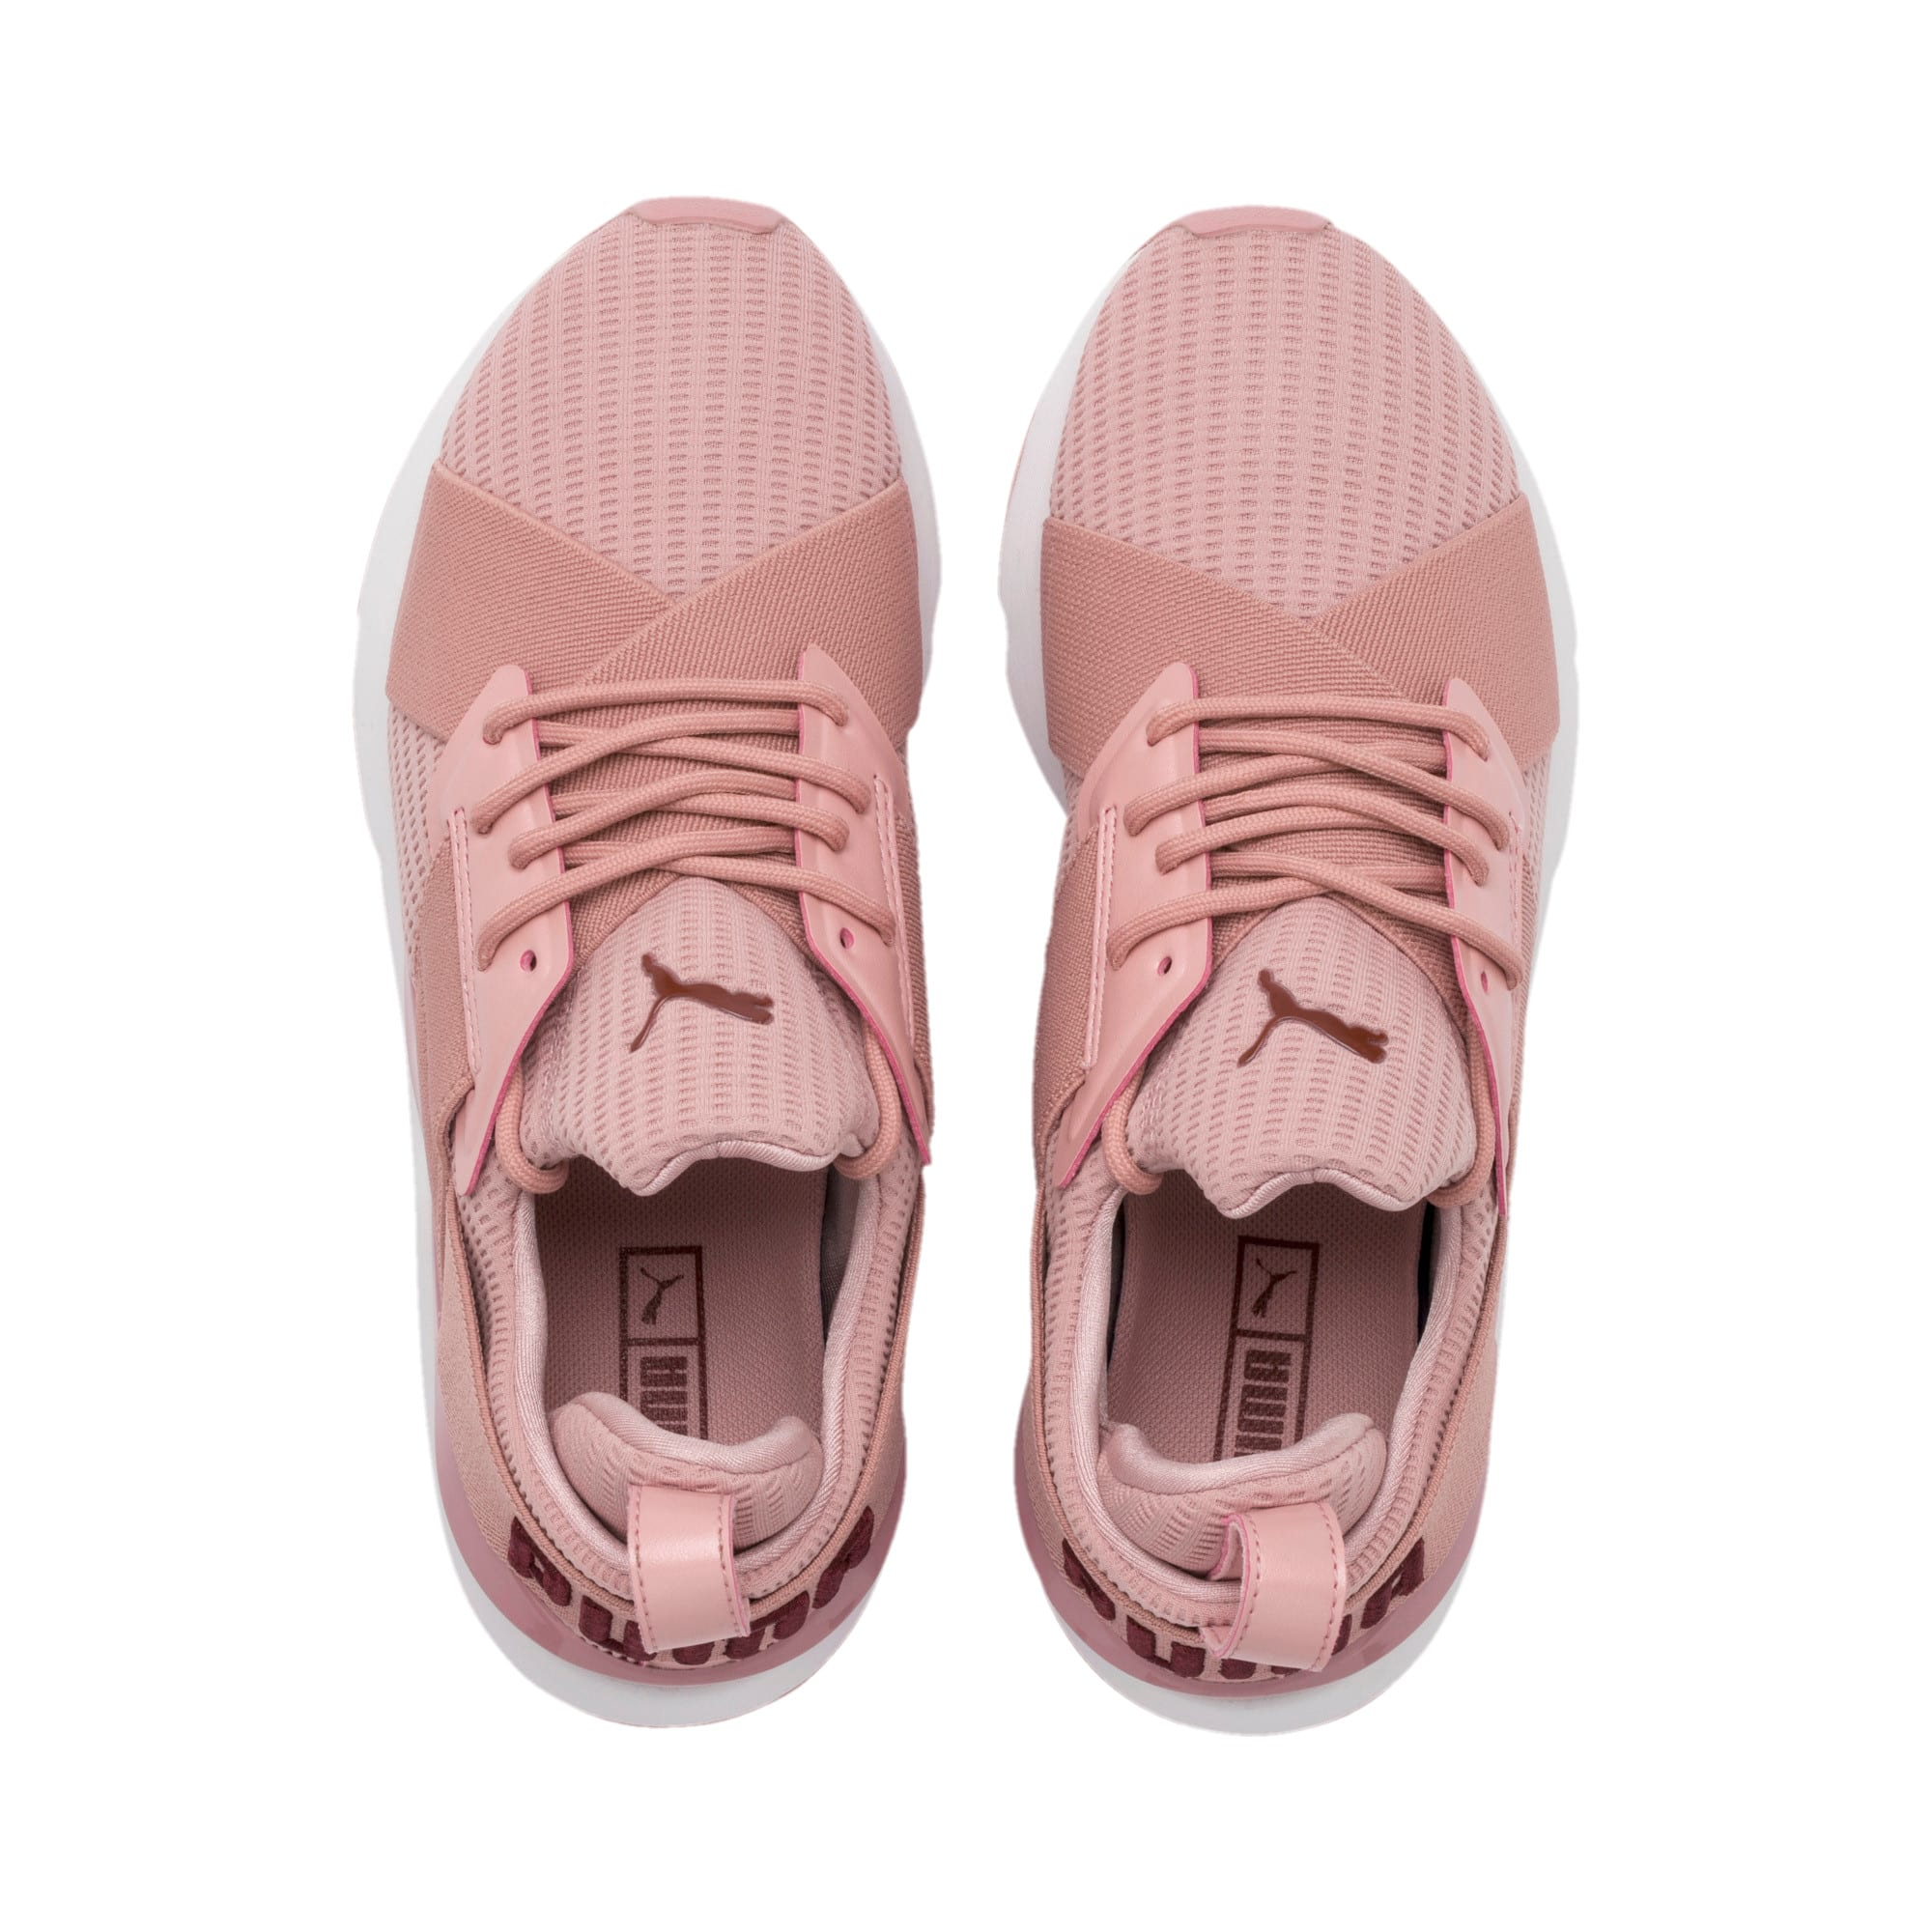 Thumbnail 7 of Muse Core+ Women's Sneakers, Bridal Rose-Fired Brick, medium